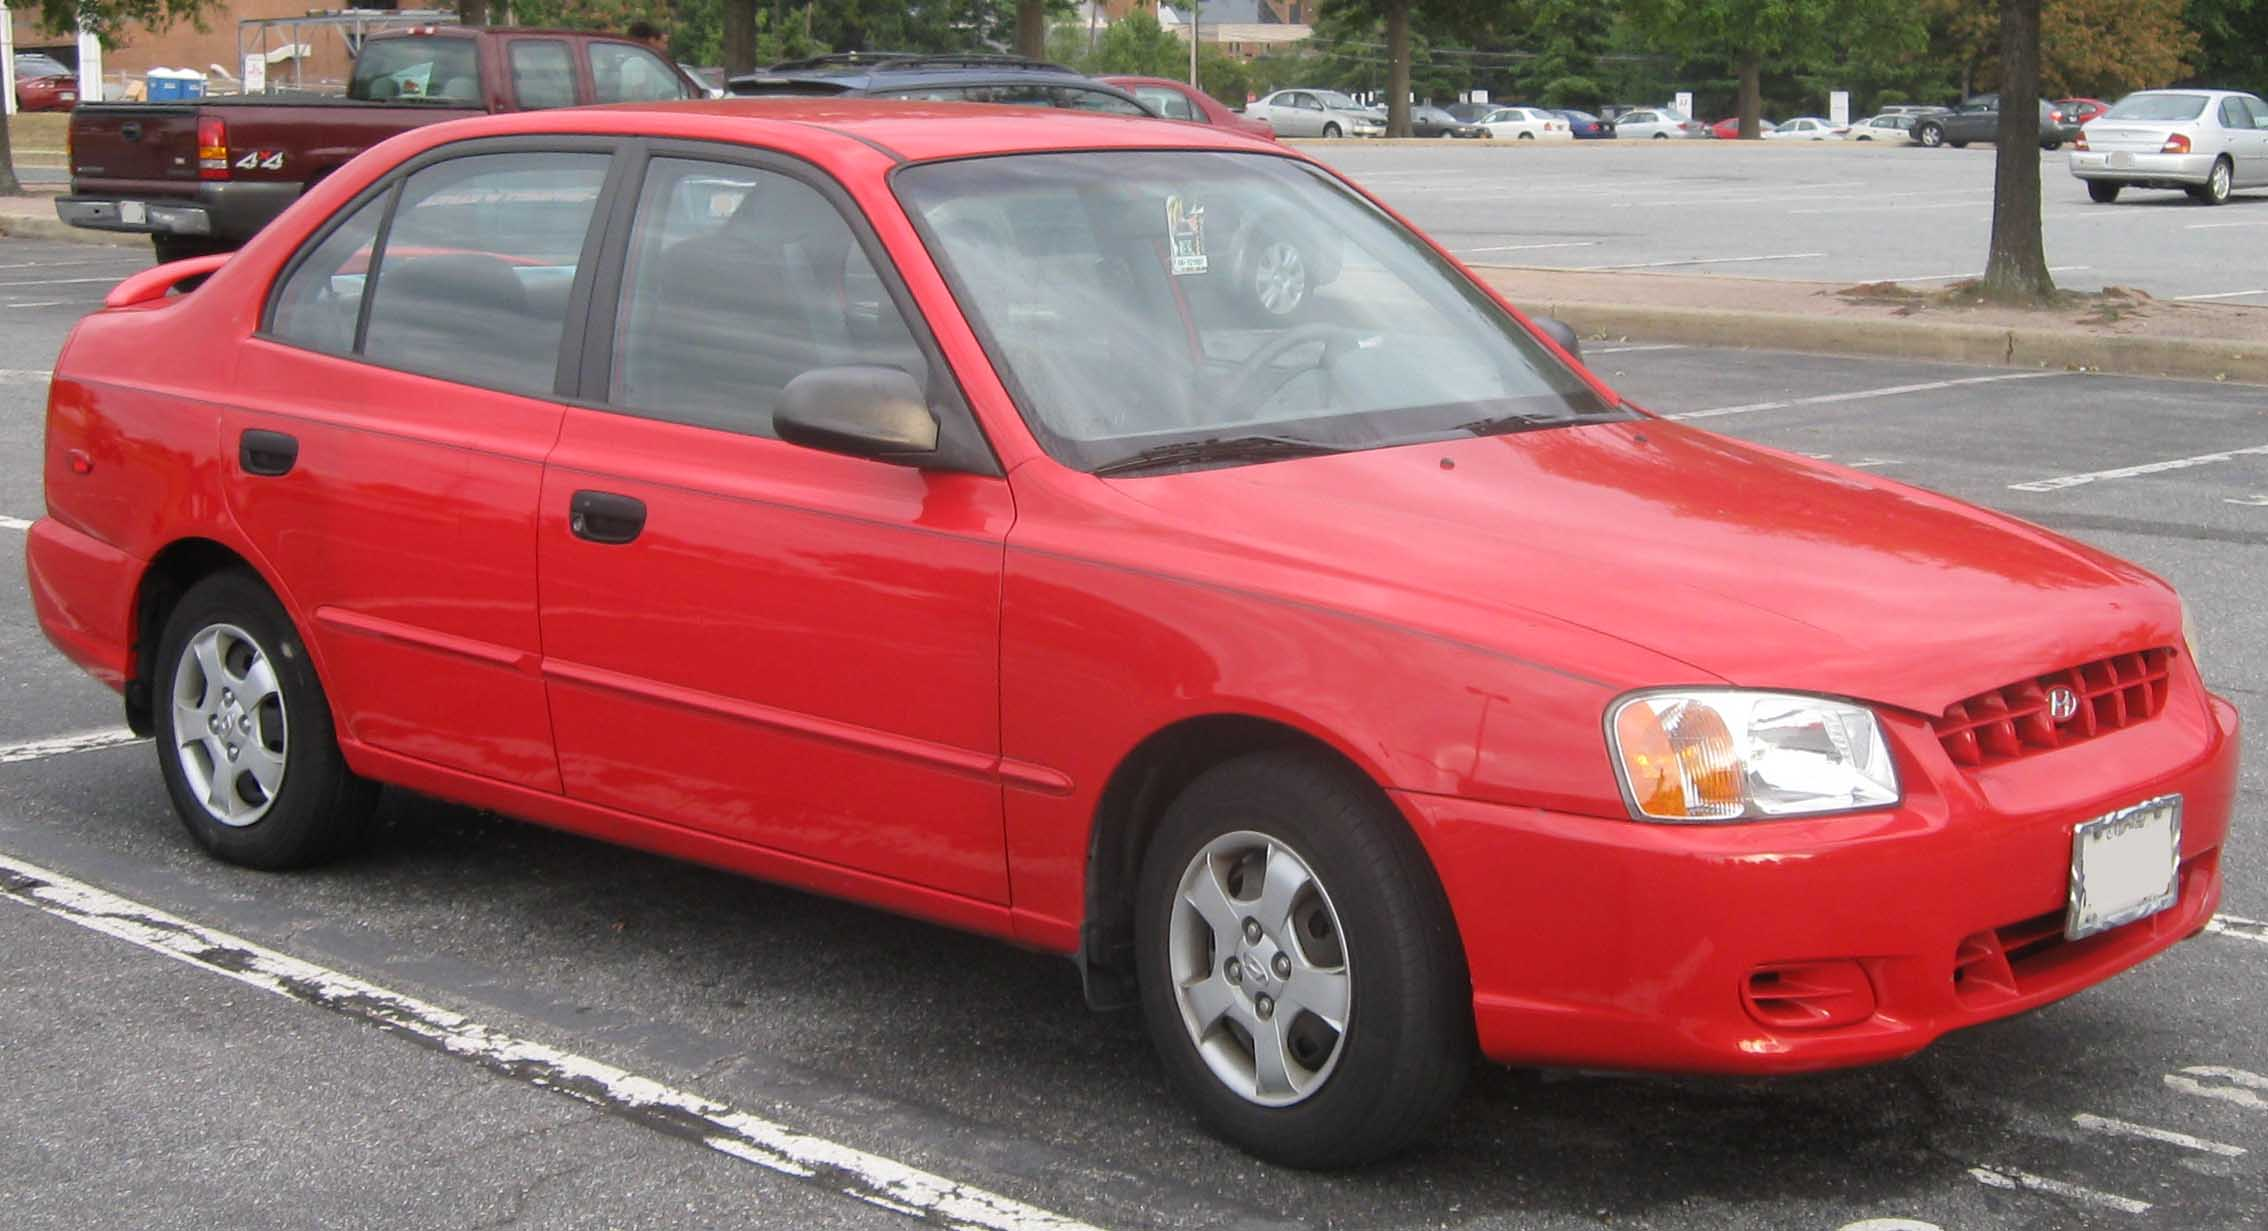 file 00 02 hyundai accent gl sedan jpg wikimedia commons https commons wikimedia org wiki file 00 02 hyundai accent gl sedan jpg